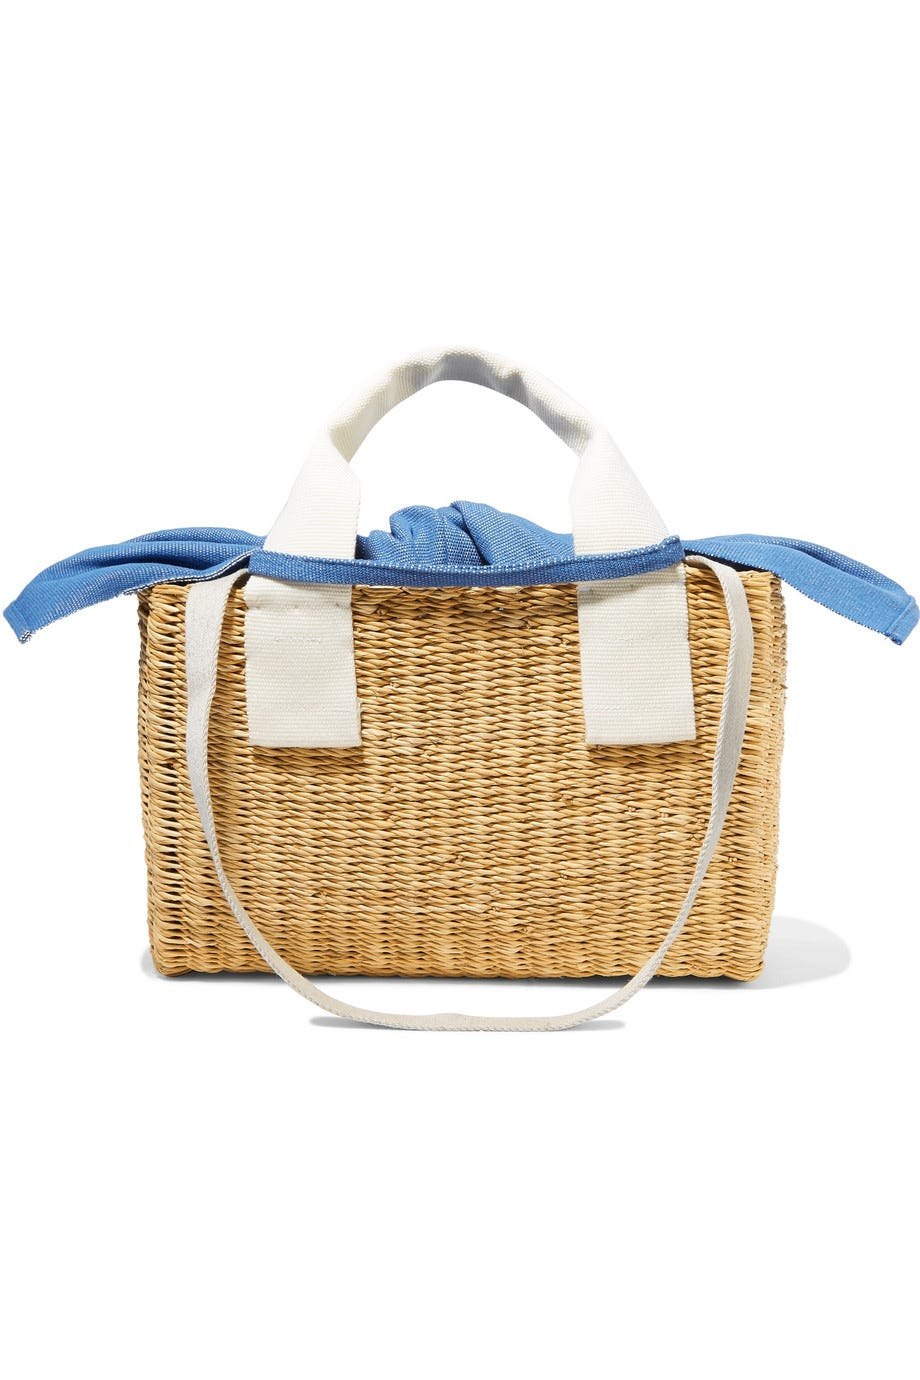 images 17 Basket Bags We're Very Into RightNow